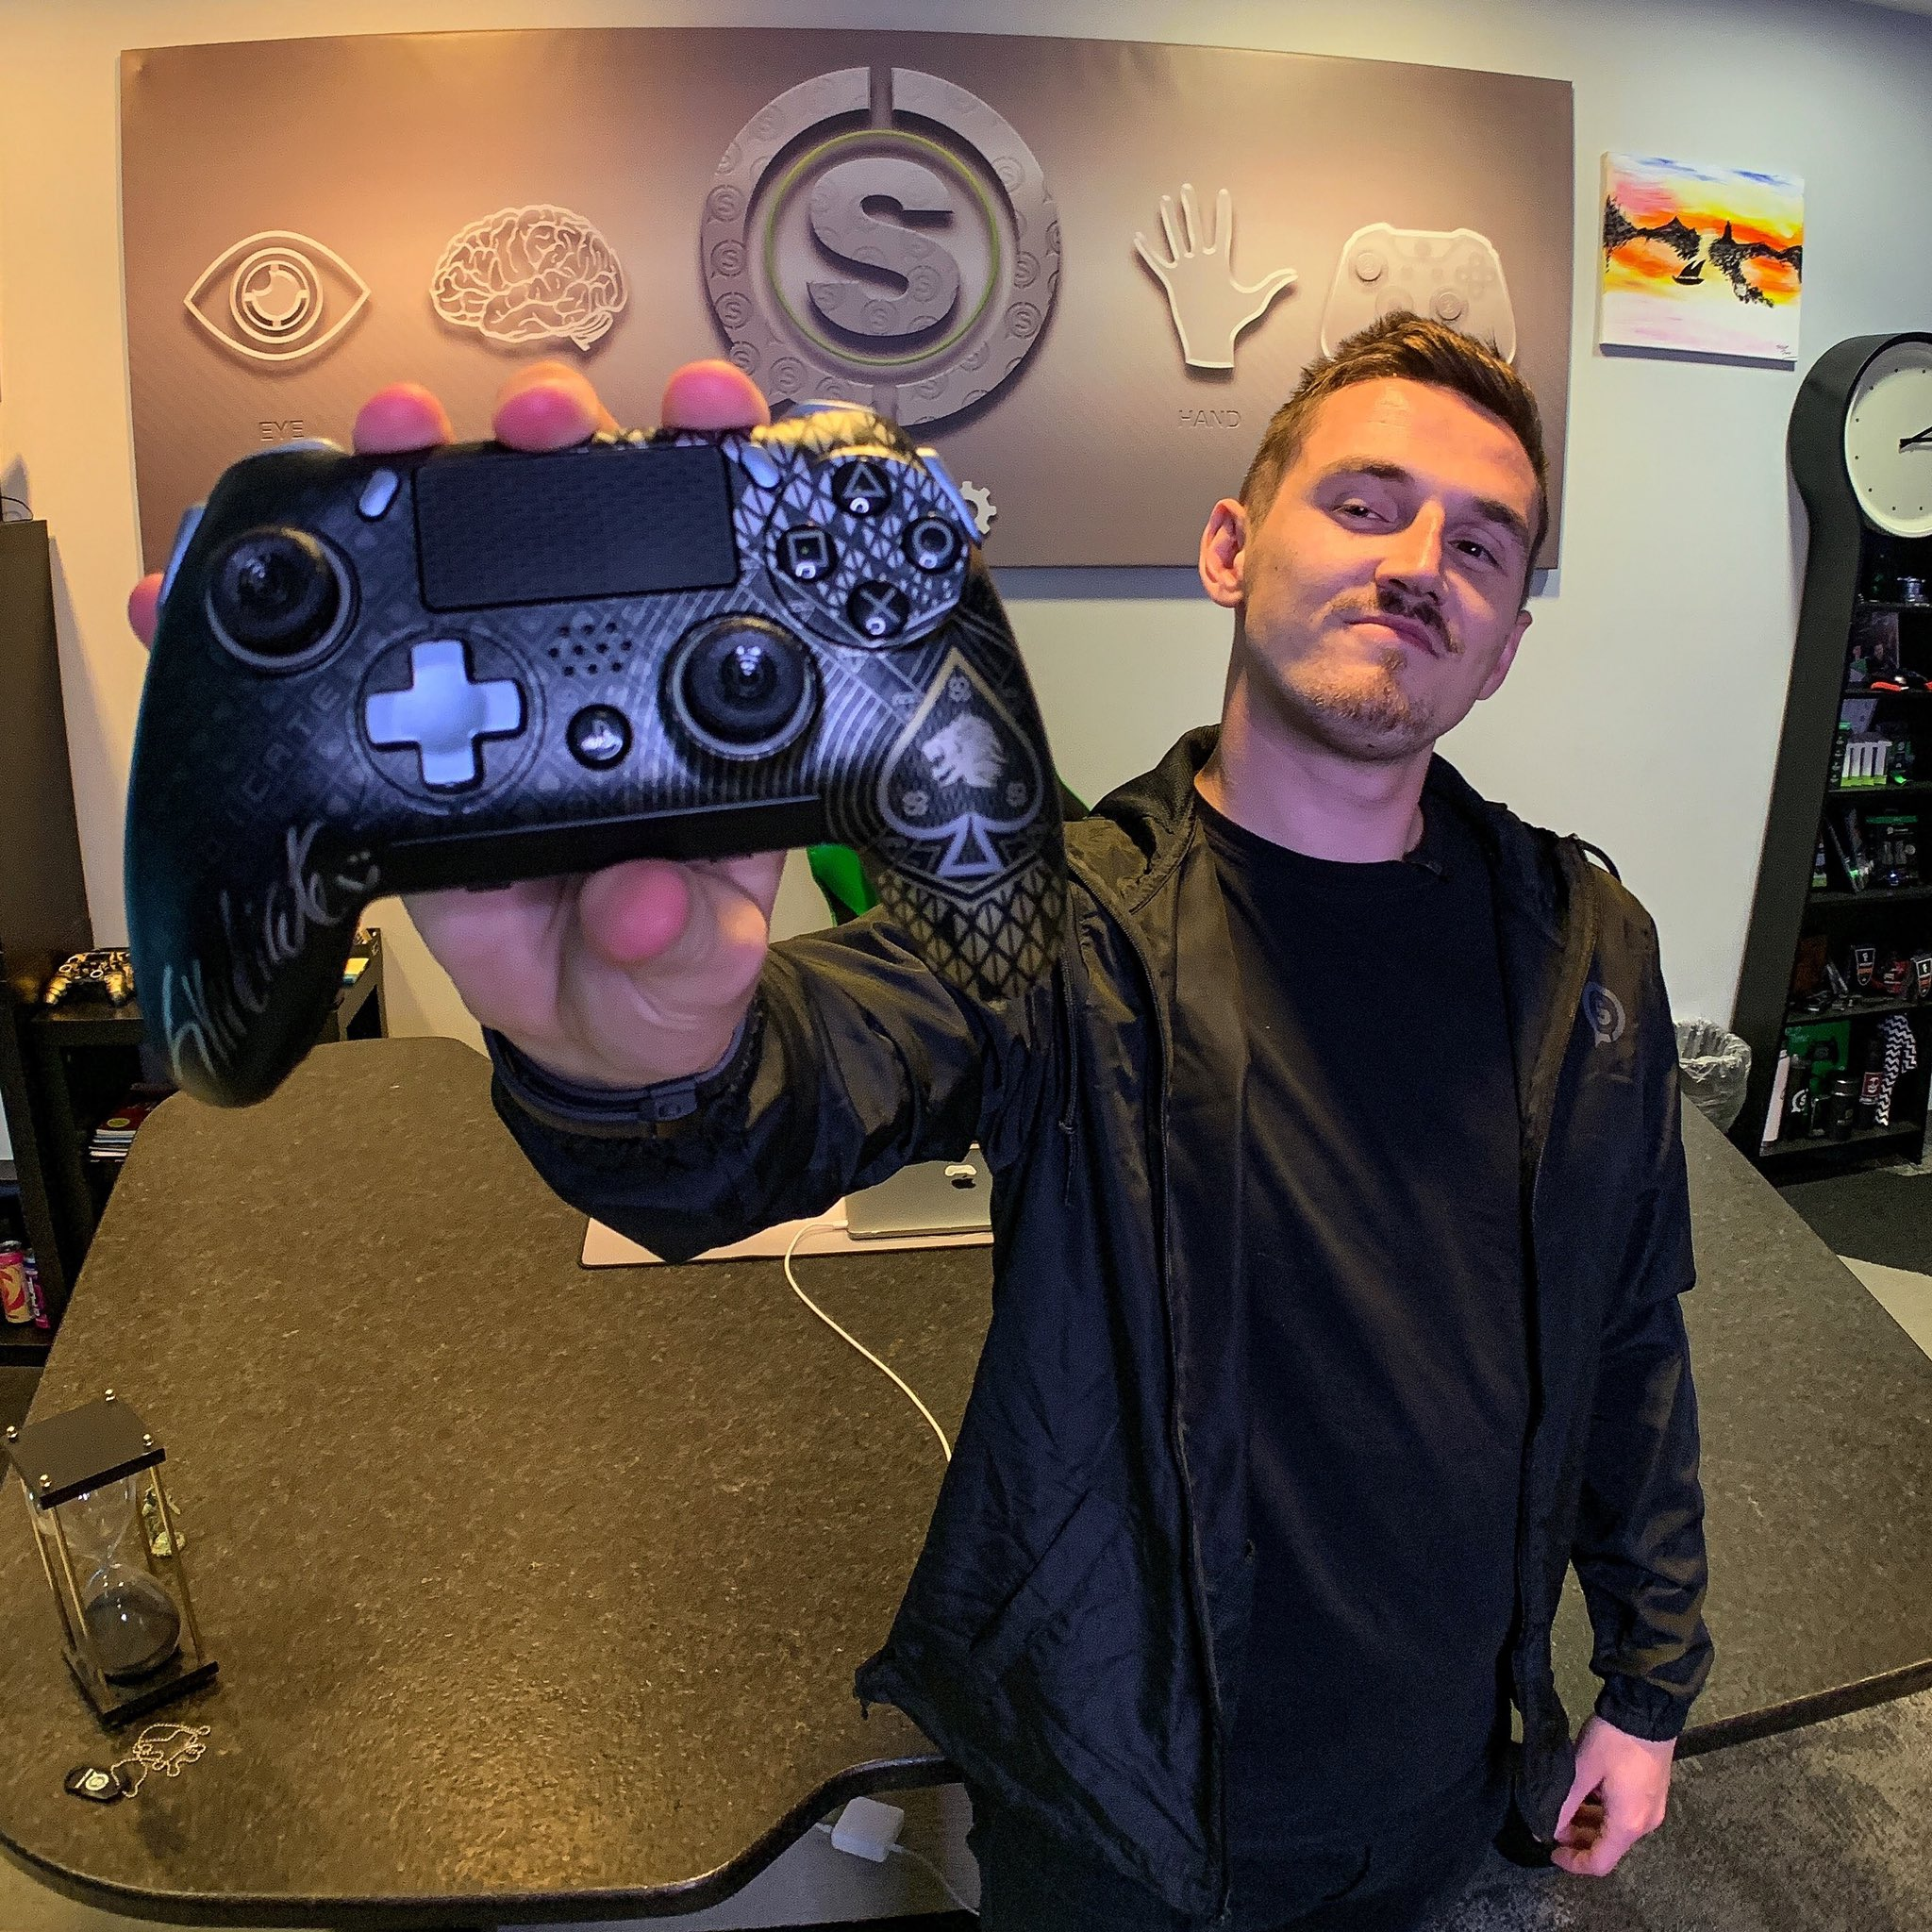 Tom Syndicate: Check out the reveal of my very own @ScufGaming controller!   https://t.co/DjvJ2rhCX9  ...